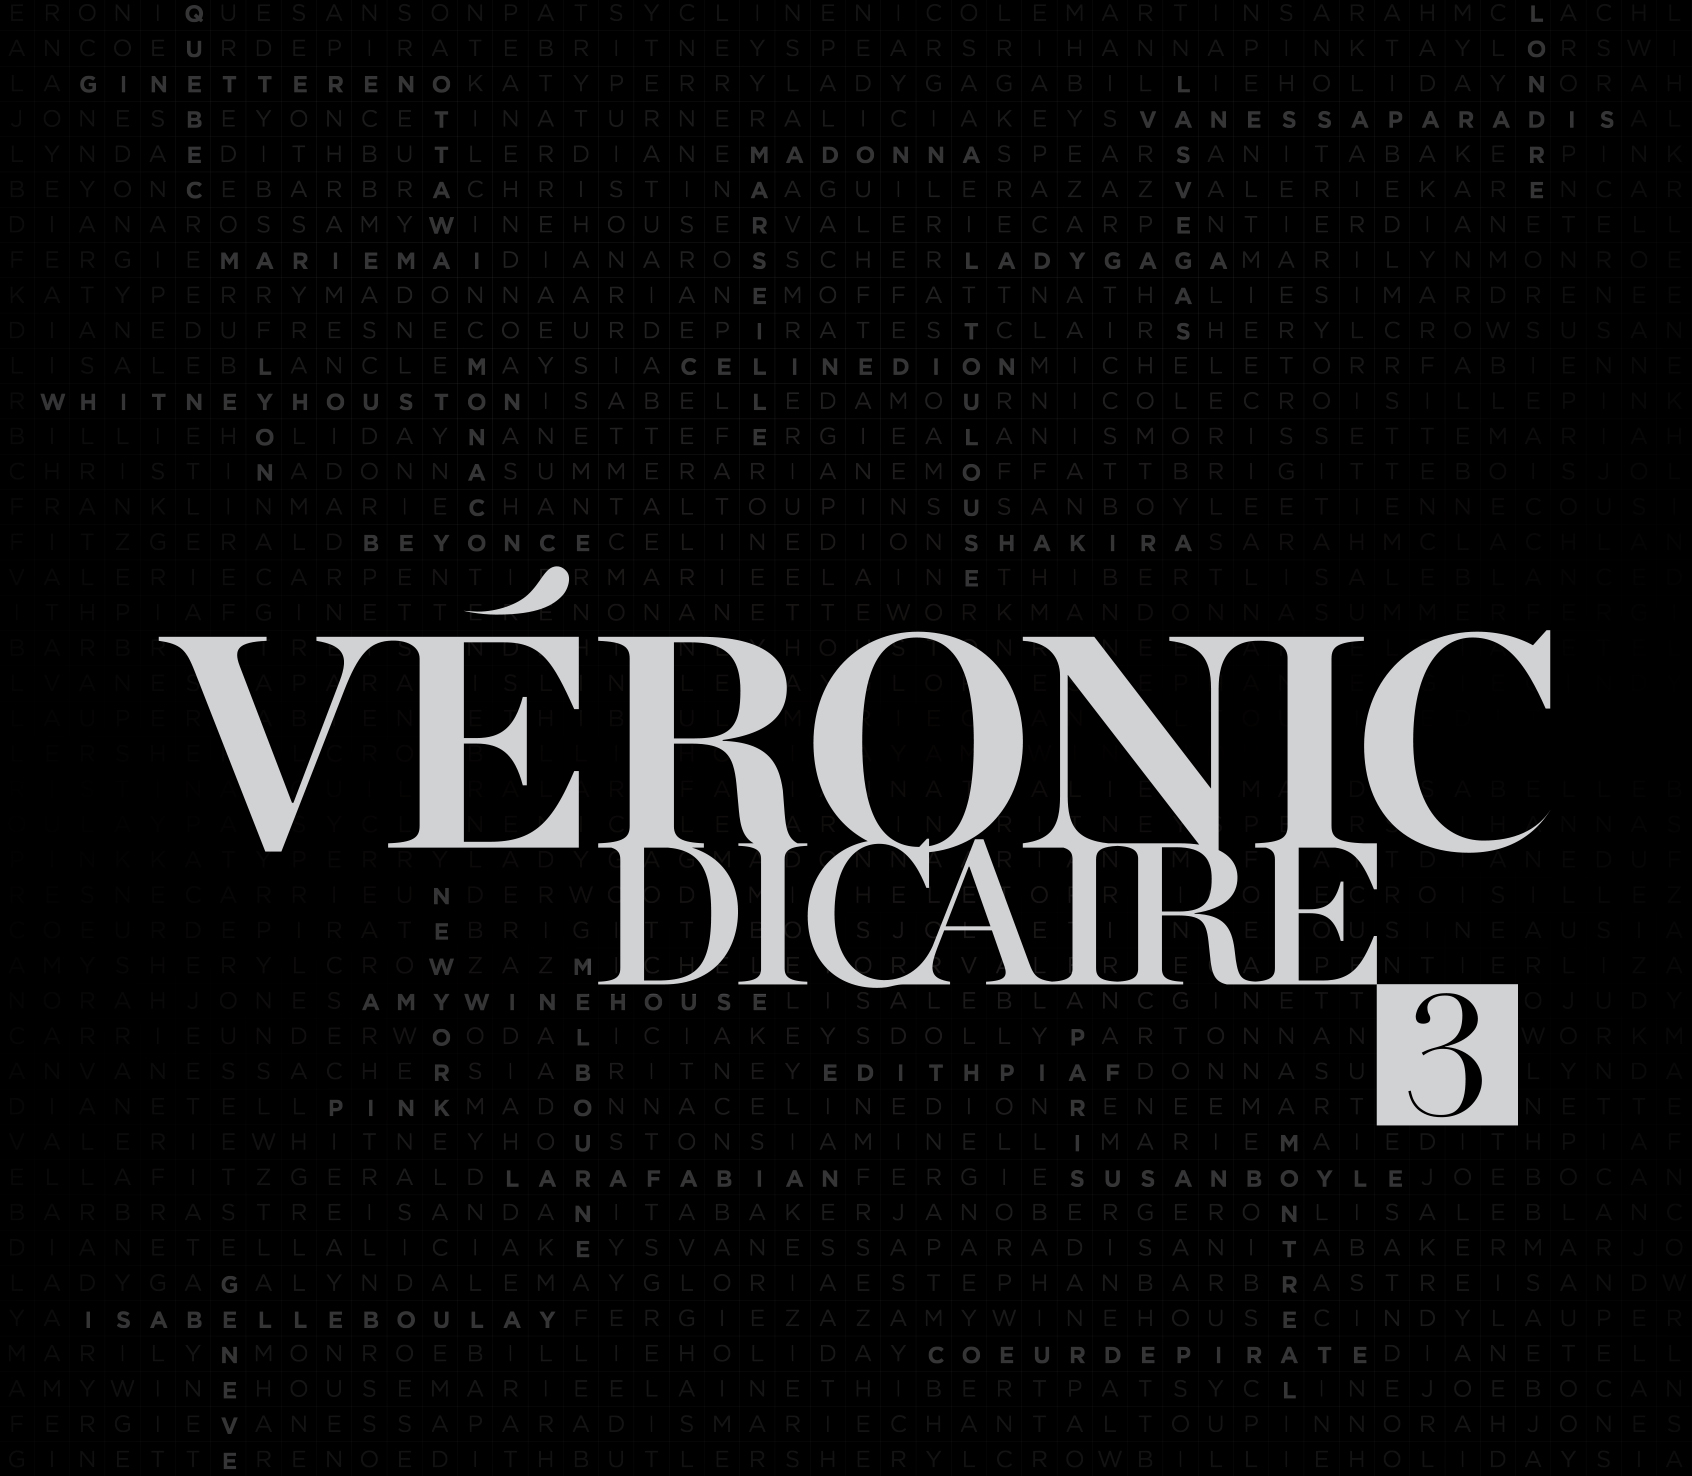 VERONIC DICAIRE- 3